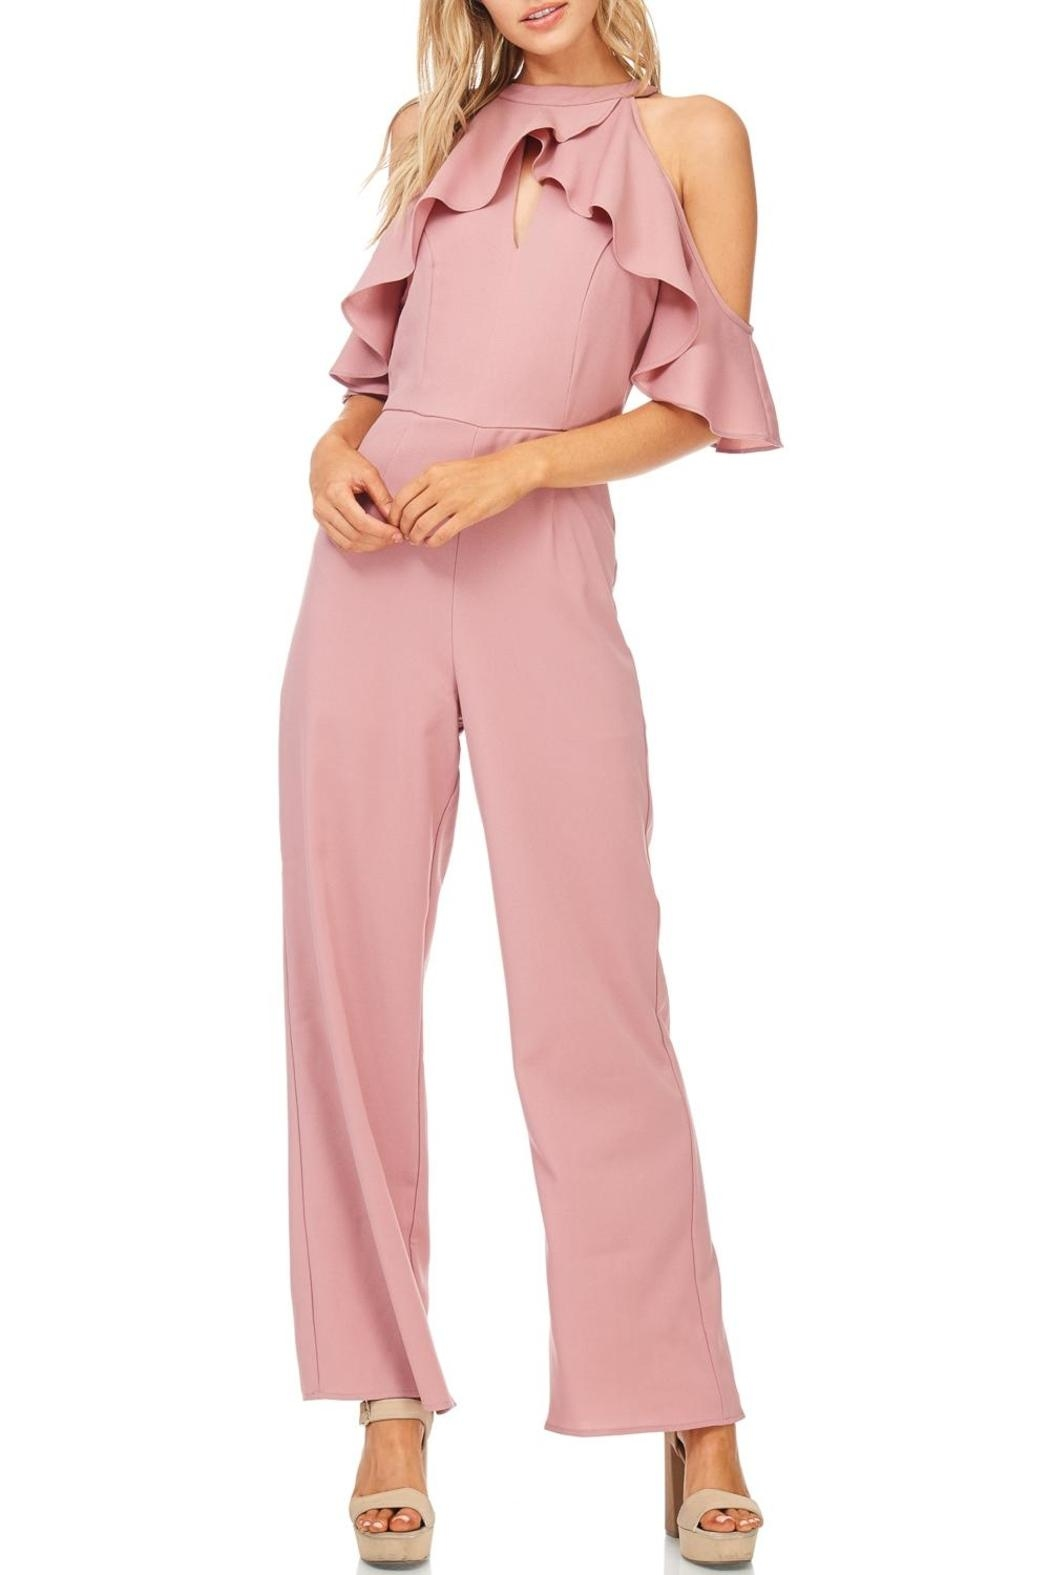 dc6d919328ef She + Sky Dusty Rose Jumpsuit from Colorado by Apricot Lane ...